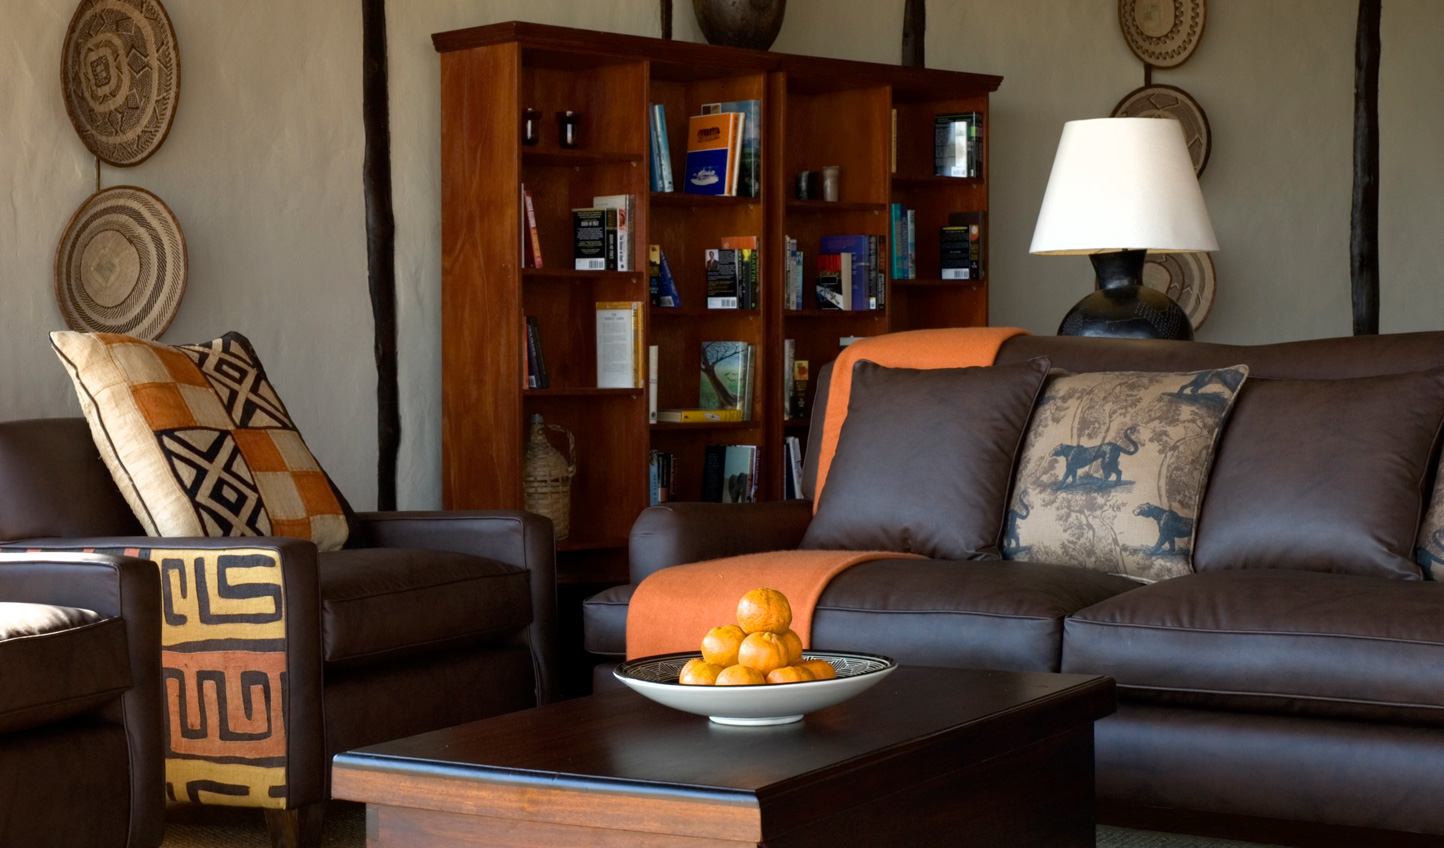 Traditional African furniture in the lounge